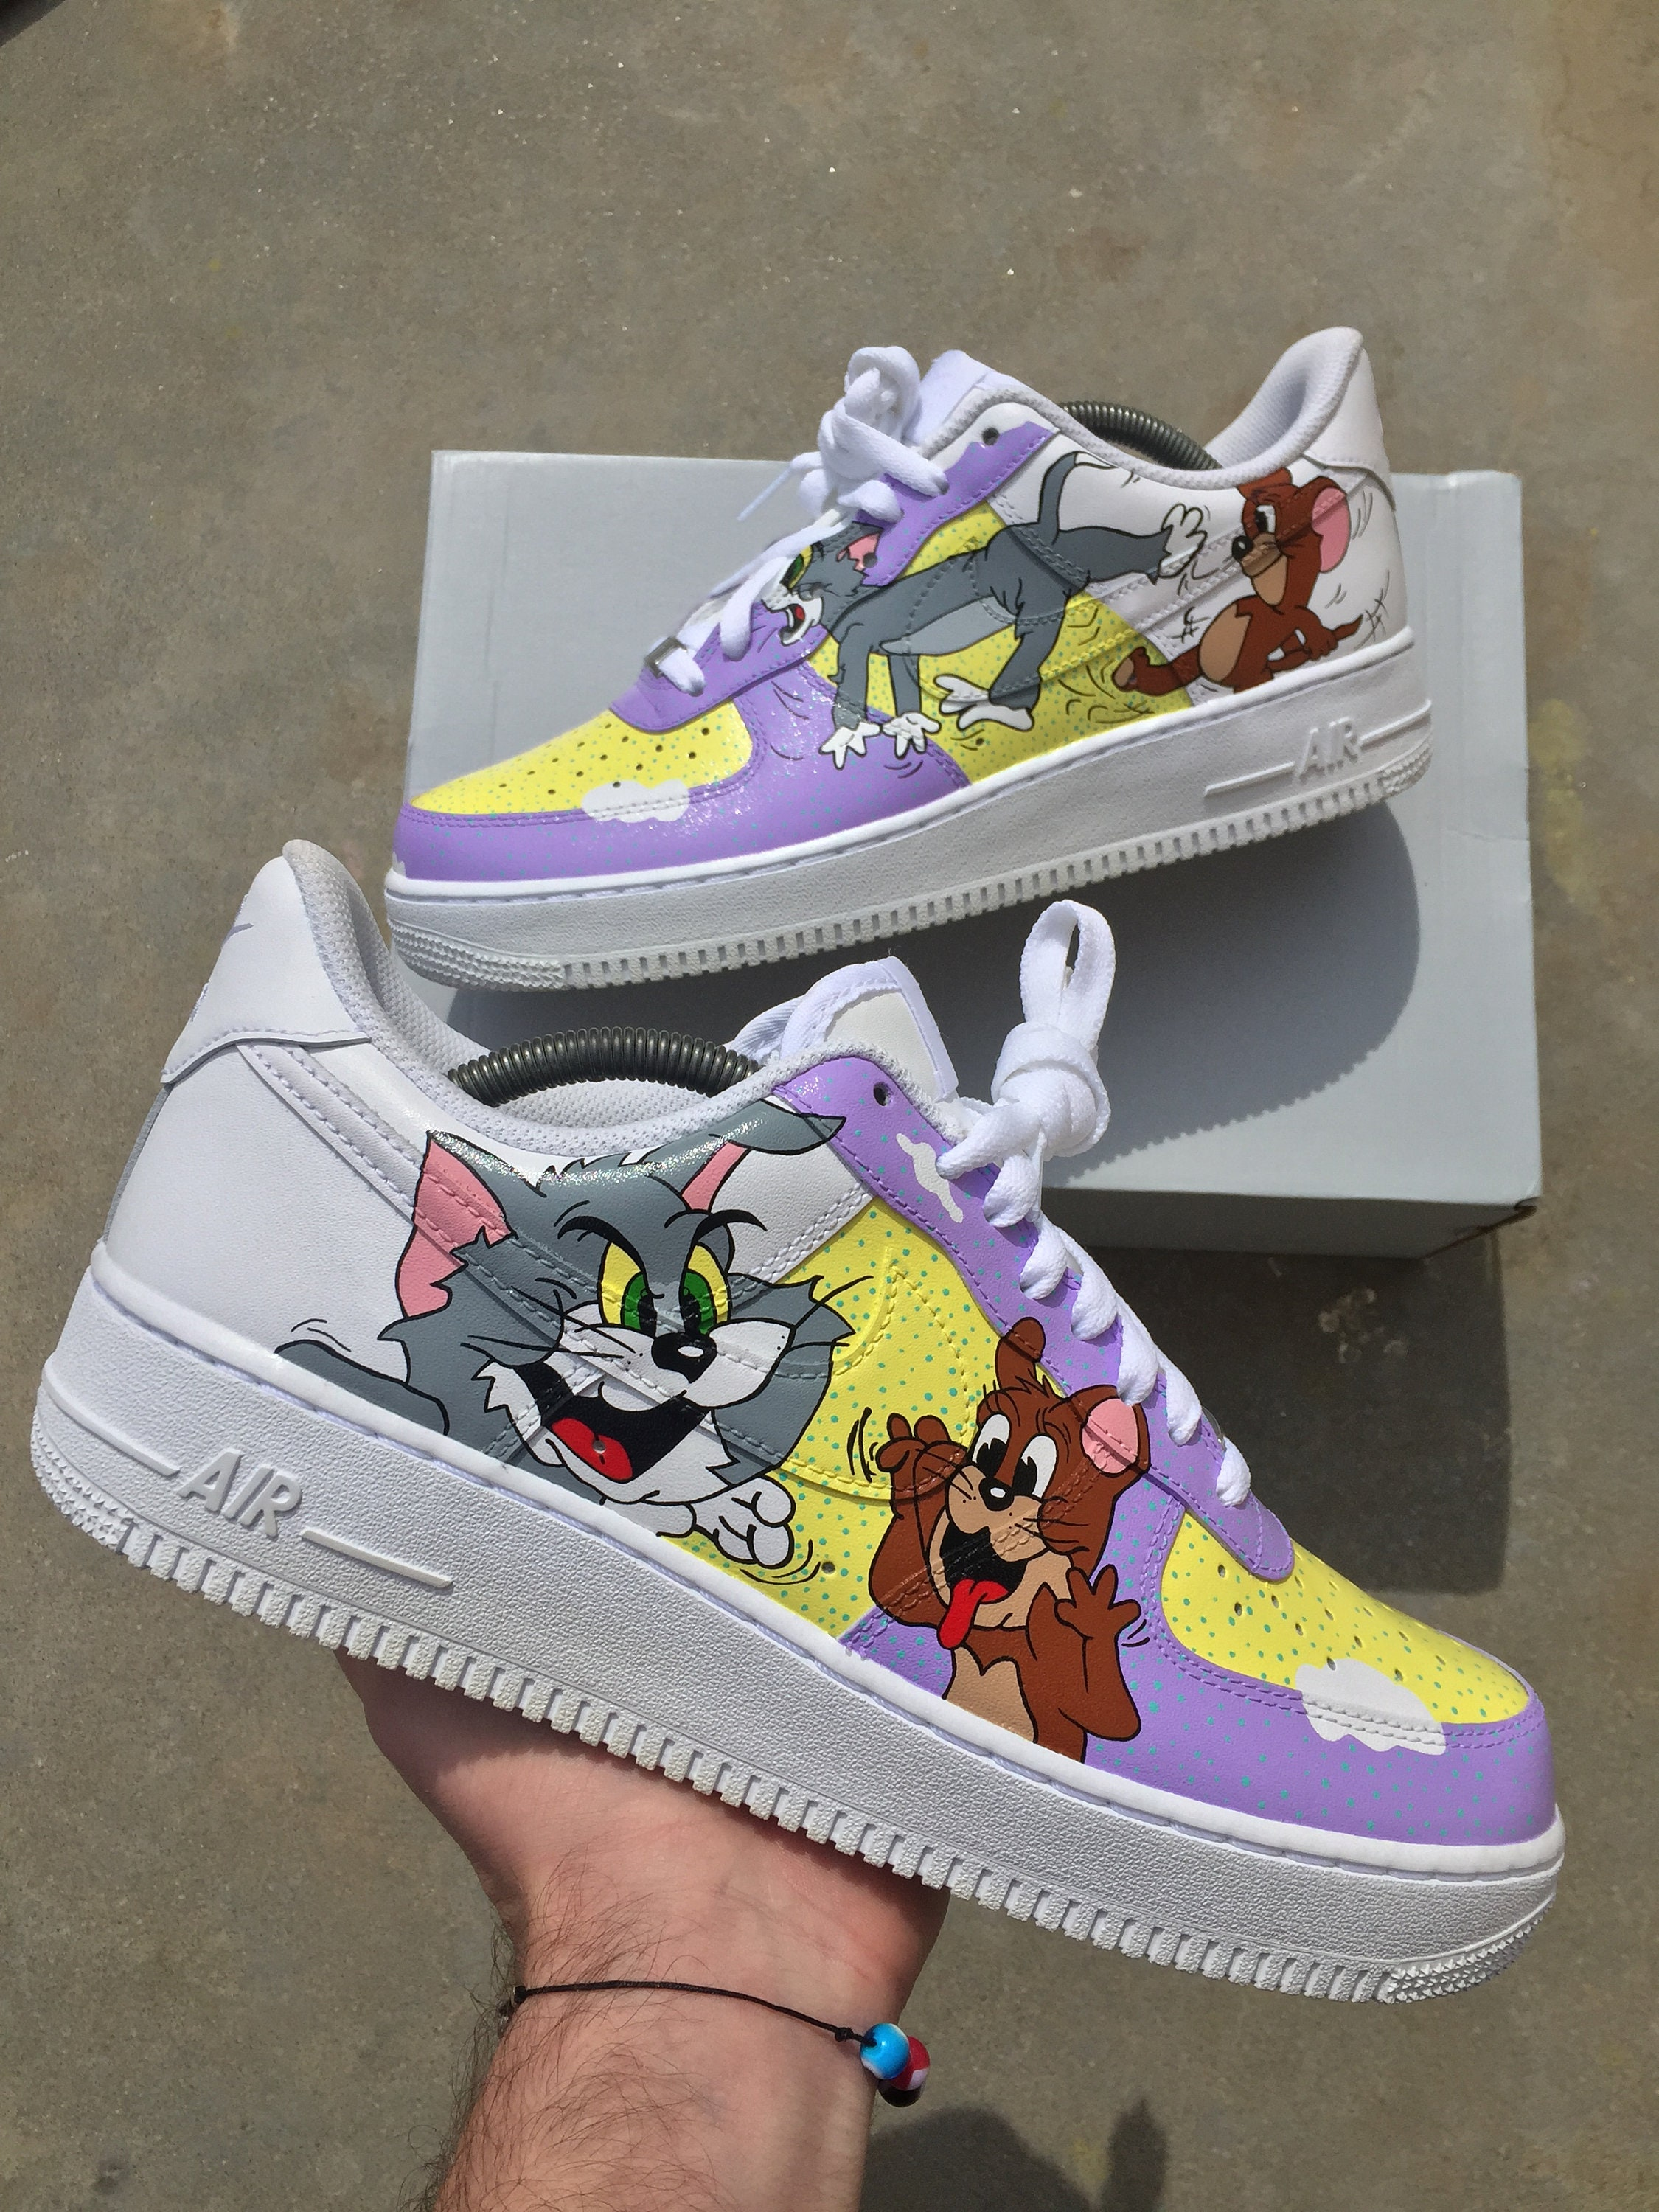 4eae8dc392f57 Custom Nike Air Force 1 - Tom & Jerry - Custom Shoes - Hand painted - Nike  Air Force One - Custom Sneakers - Nike - AF1 - Custom Kicks